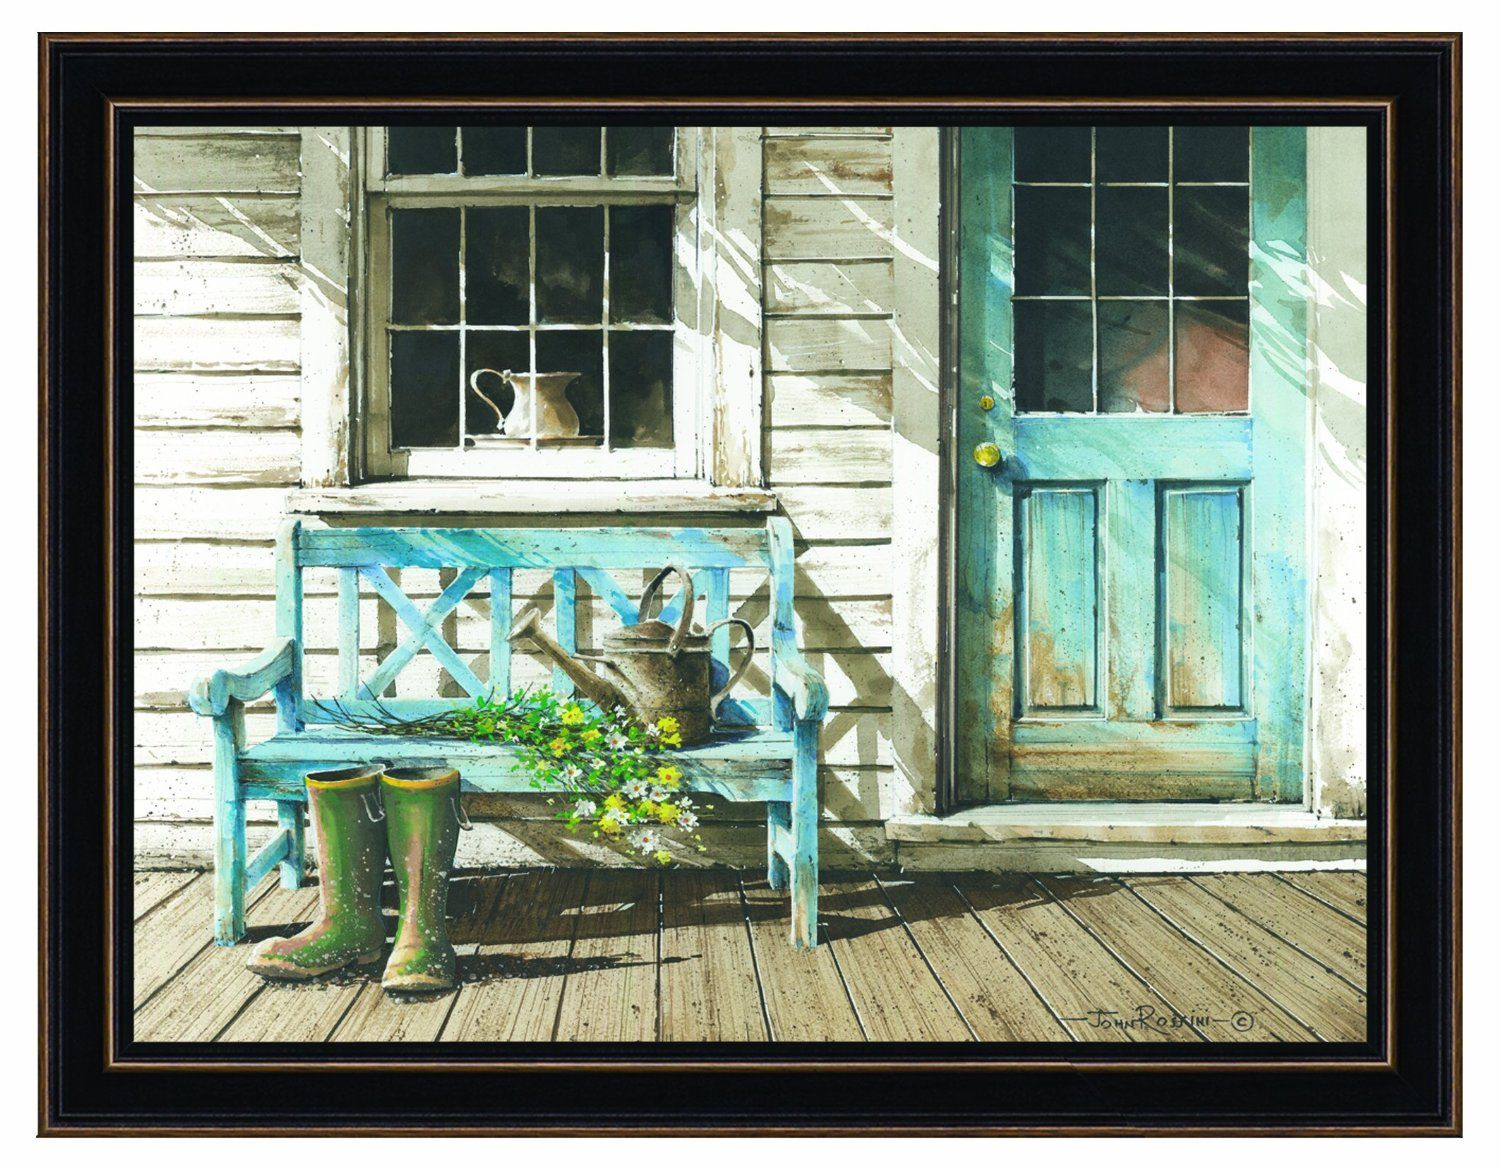 amy elizabeth's Country Homestead | Rustic Country Decor & More